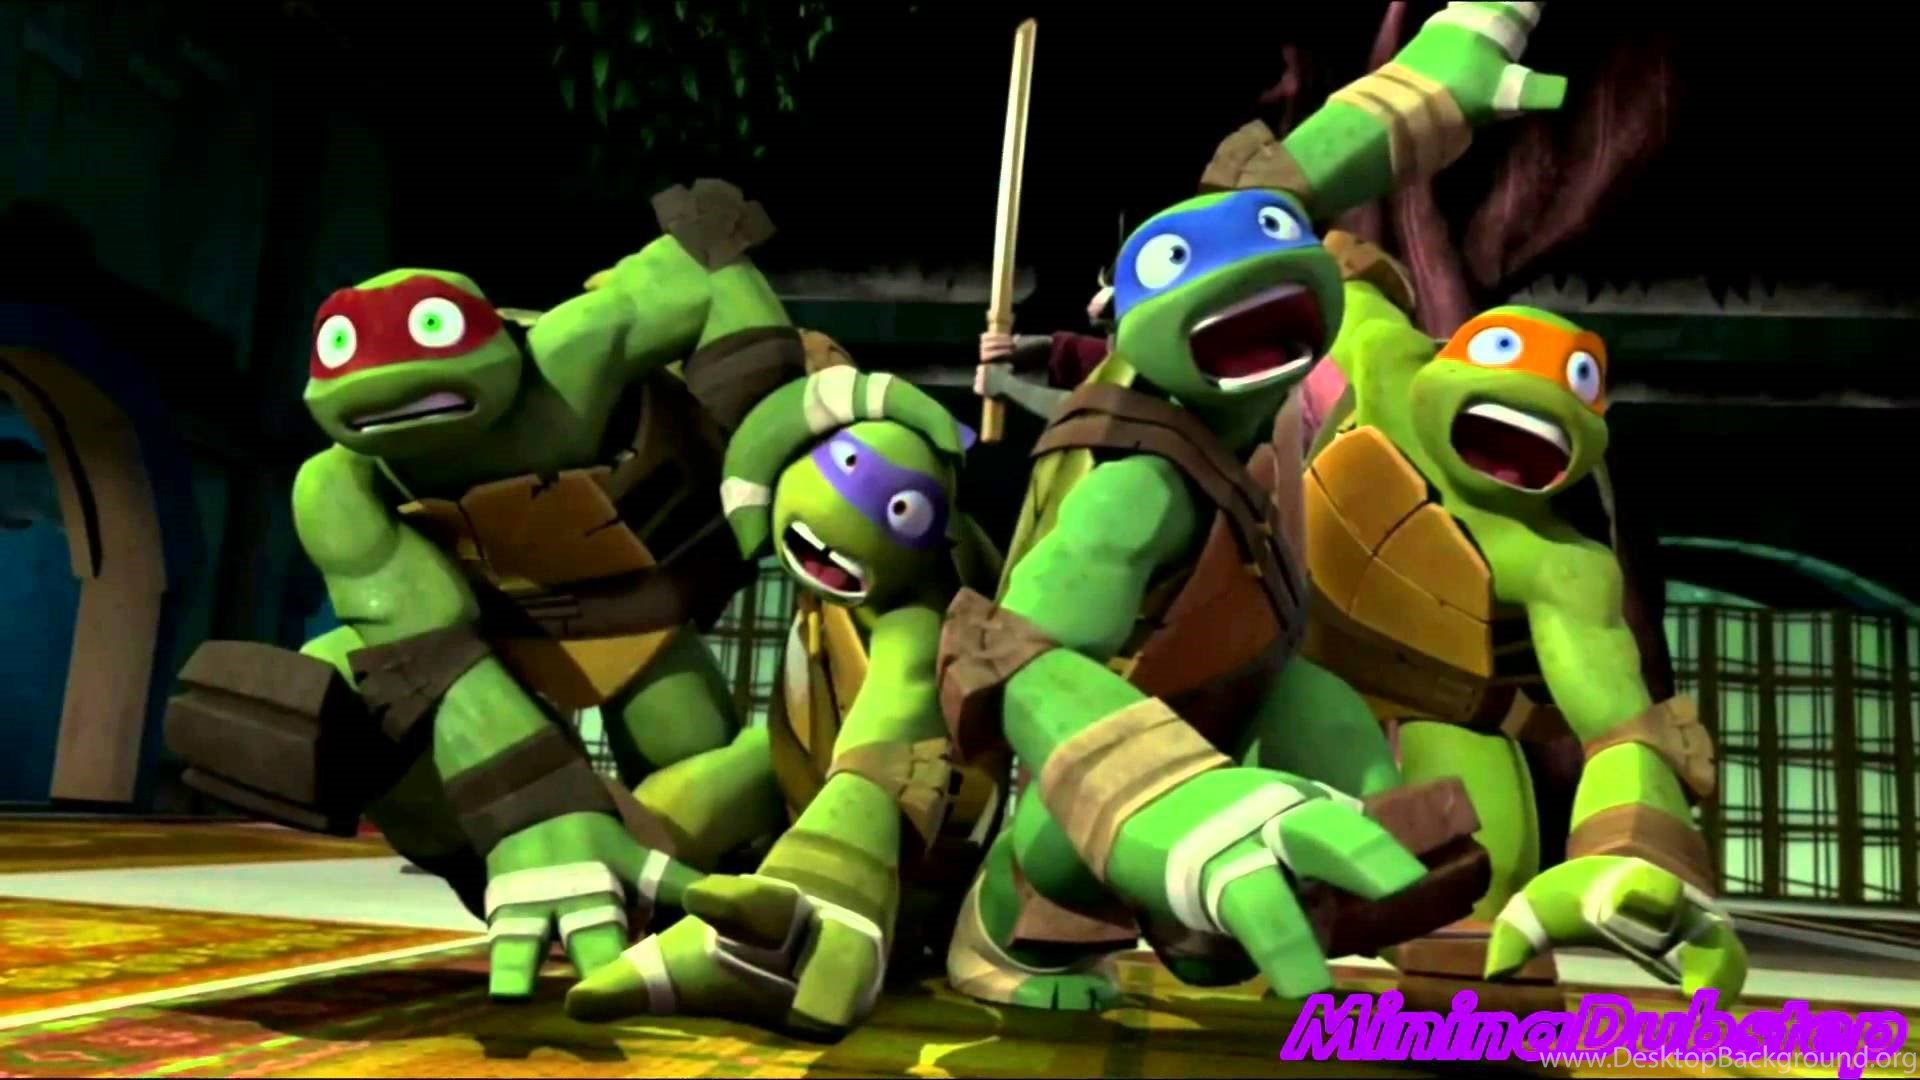 Teenage Mutant Ninja Turtles Desktop Wallpapers Desktop Background